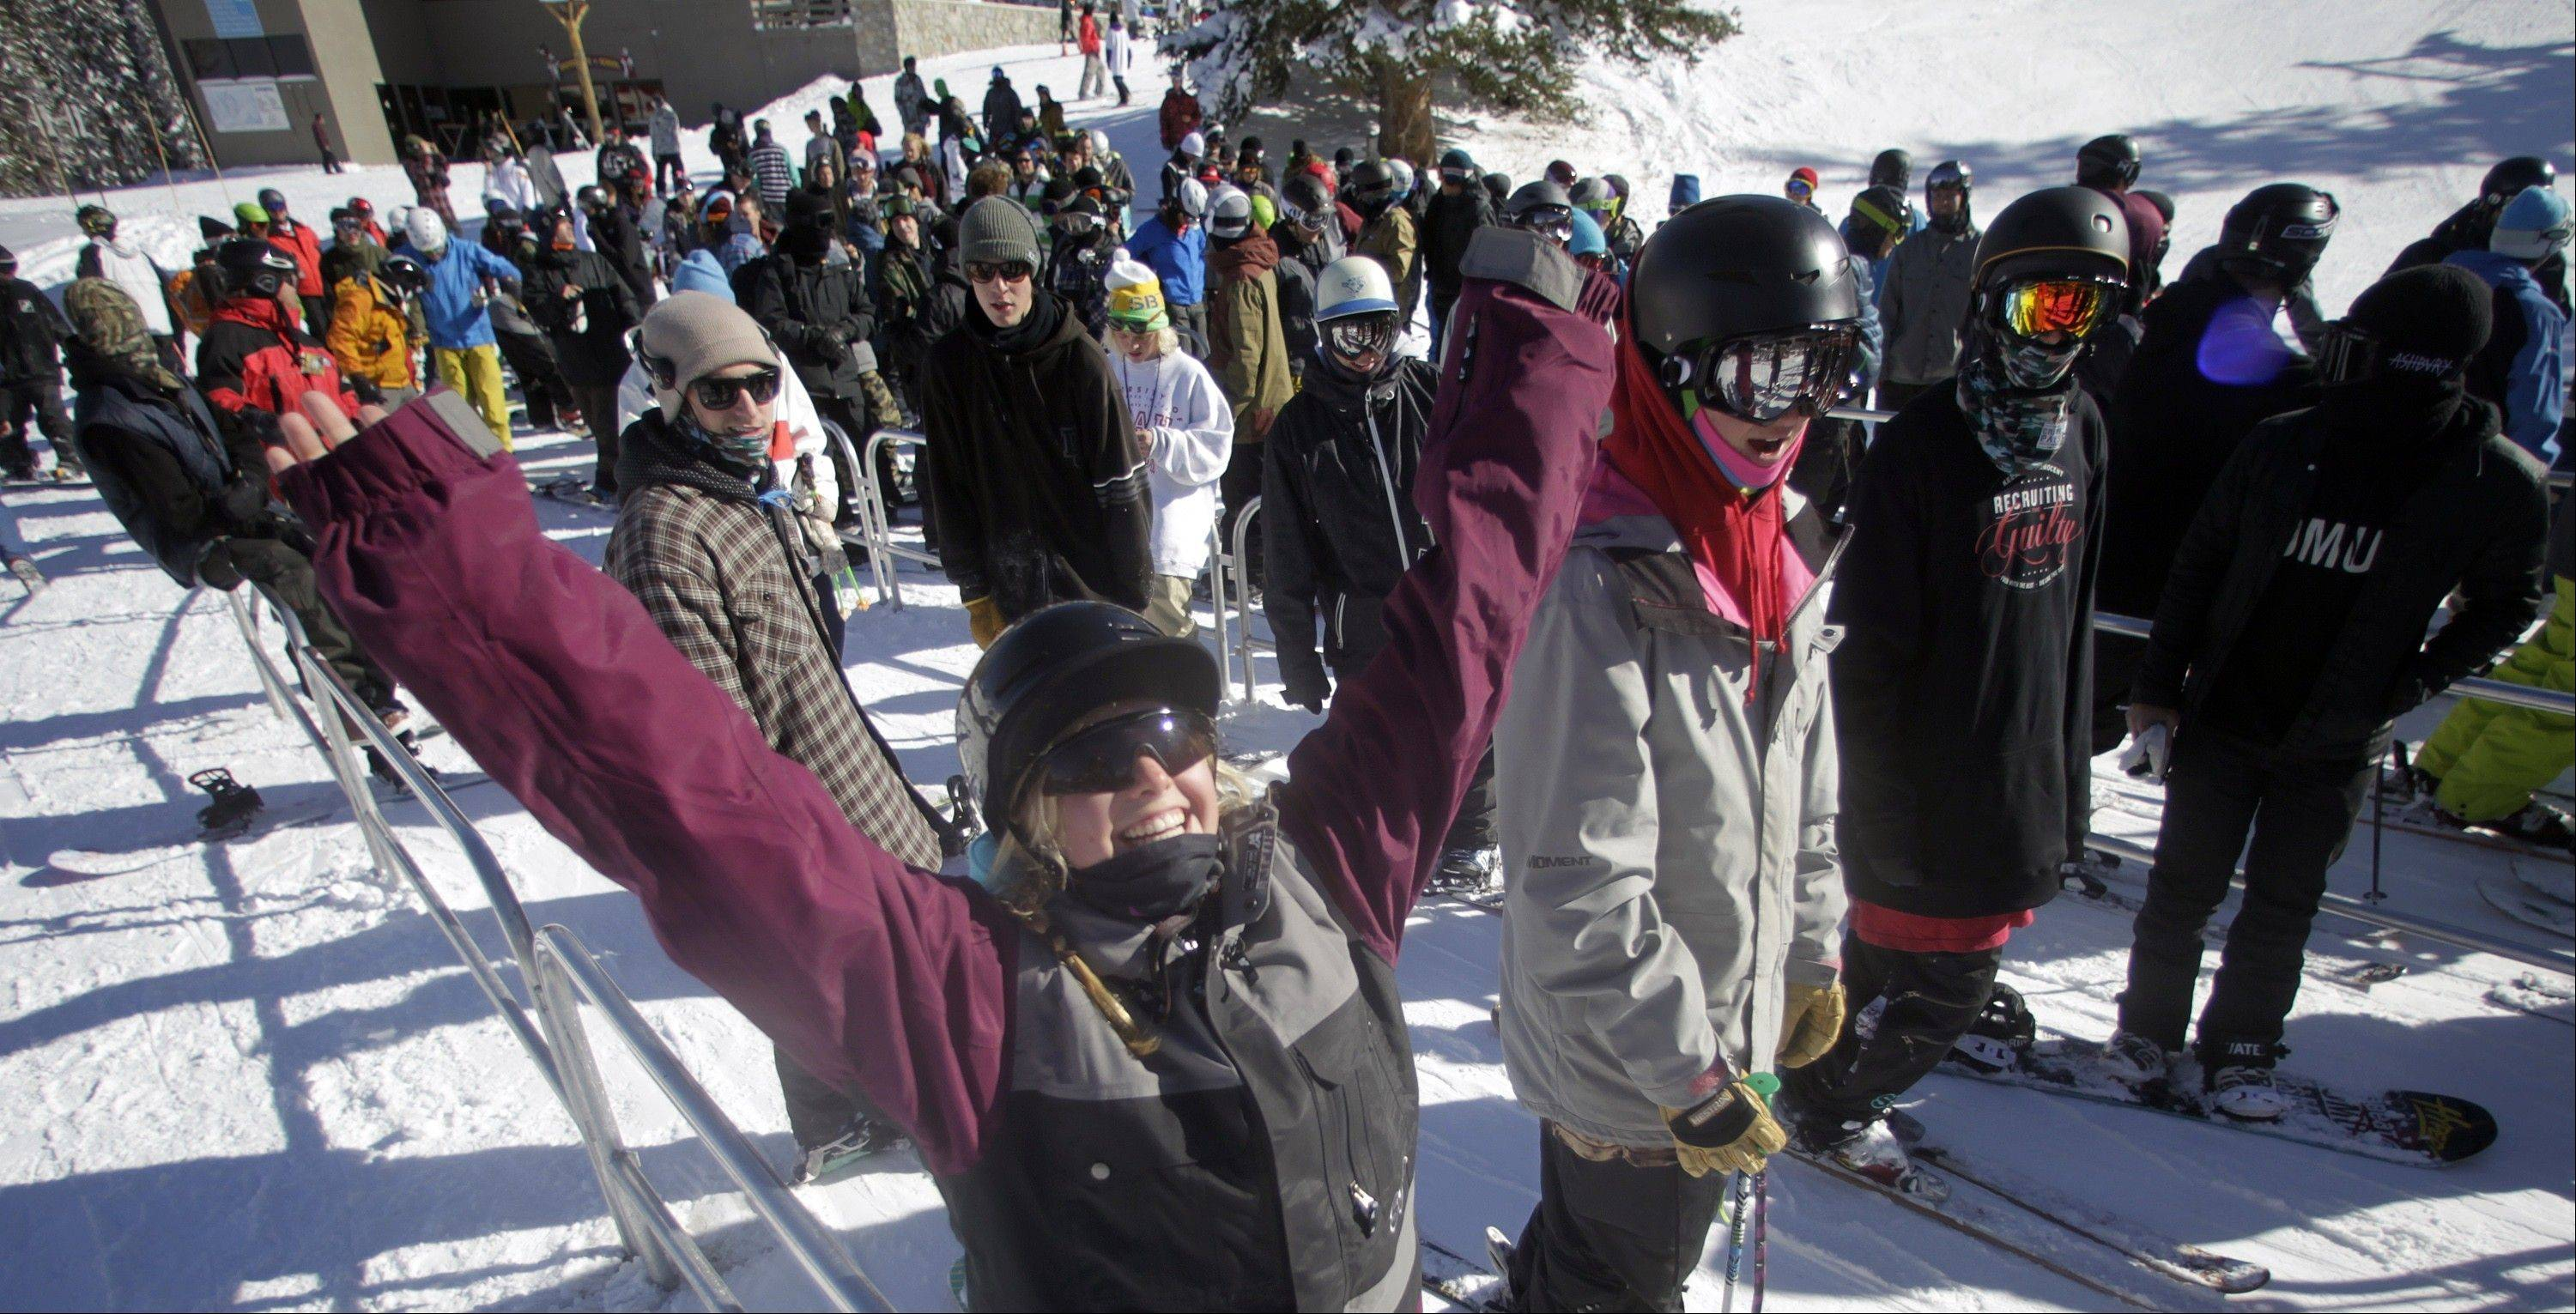 Skiers gather in line for the chair lift during the first day of ski season.